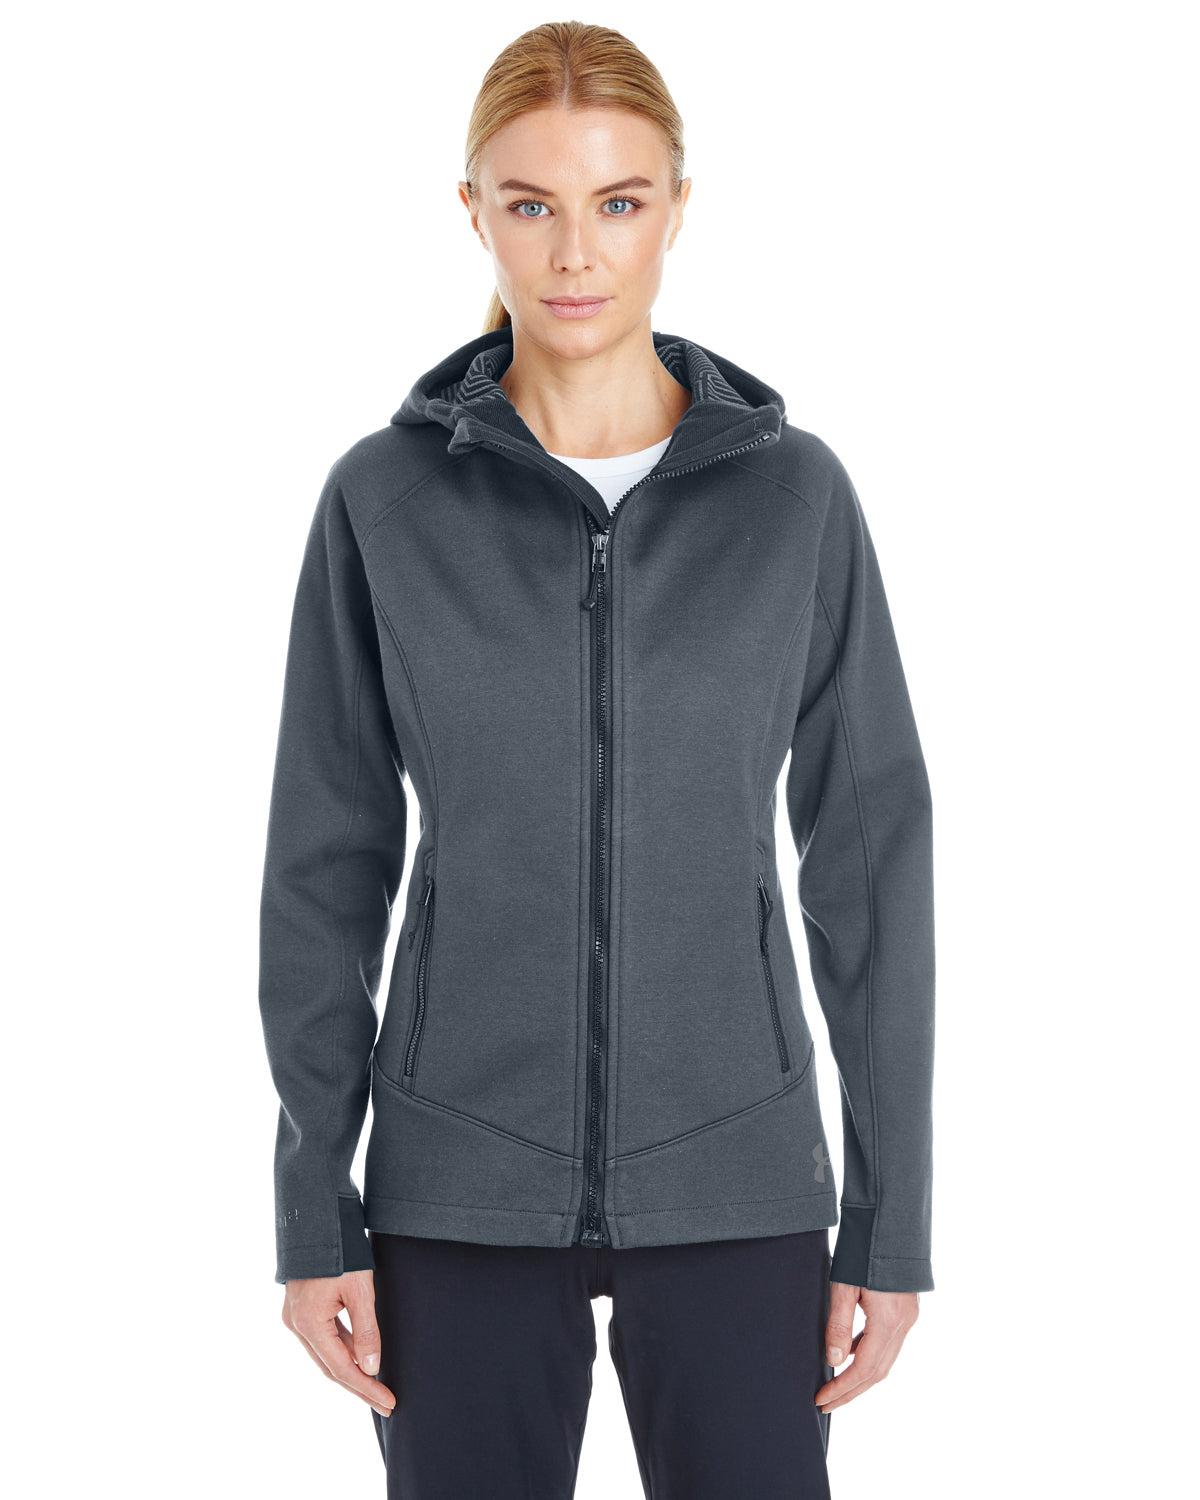 UNDER ARMOUR LADIES' UA SOFTSHELL JACKET